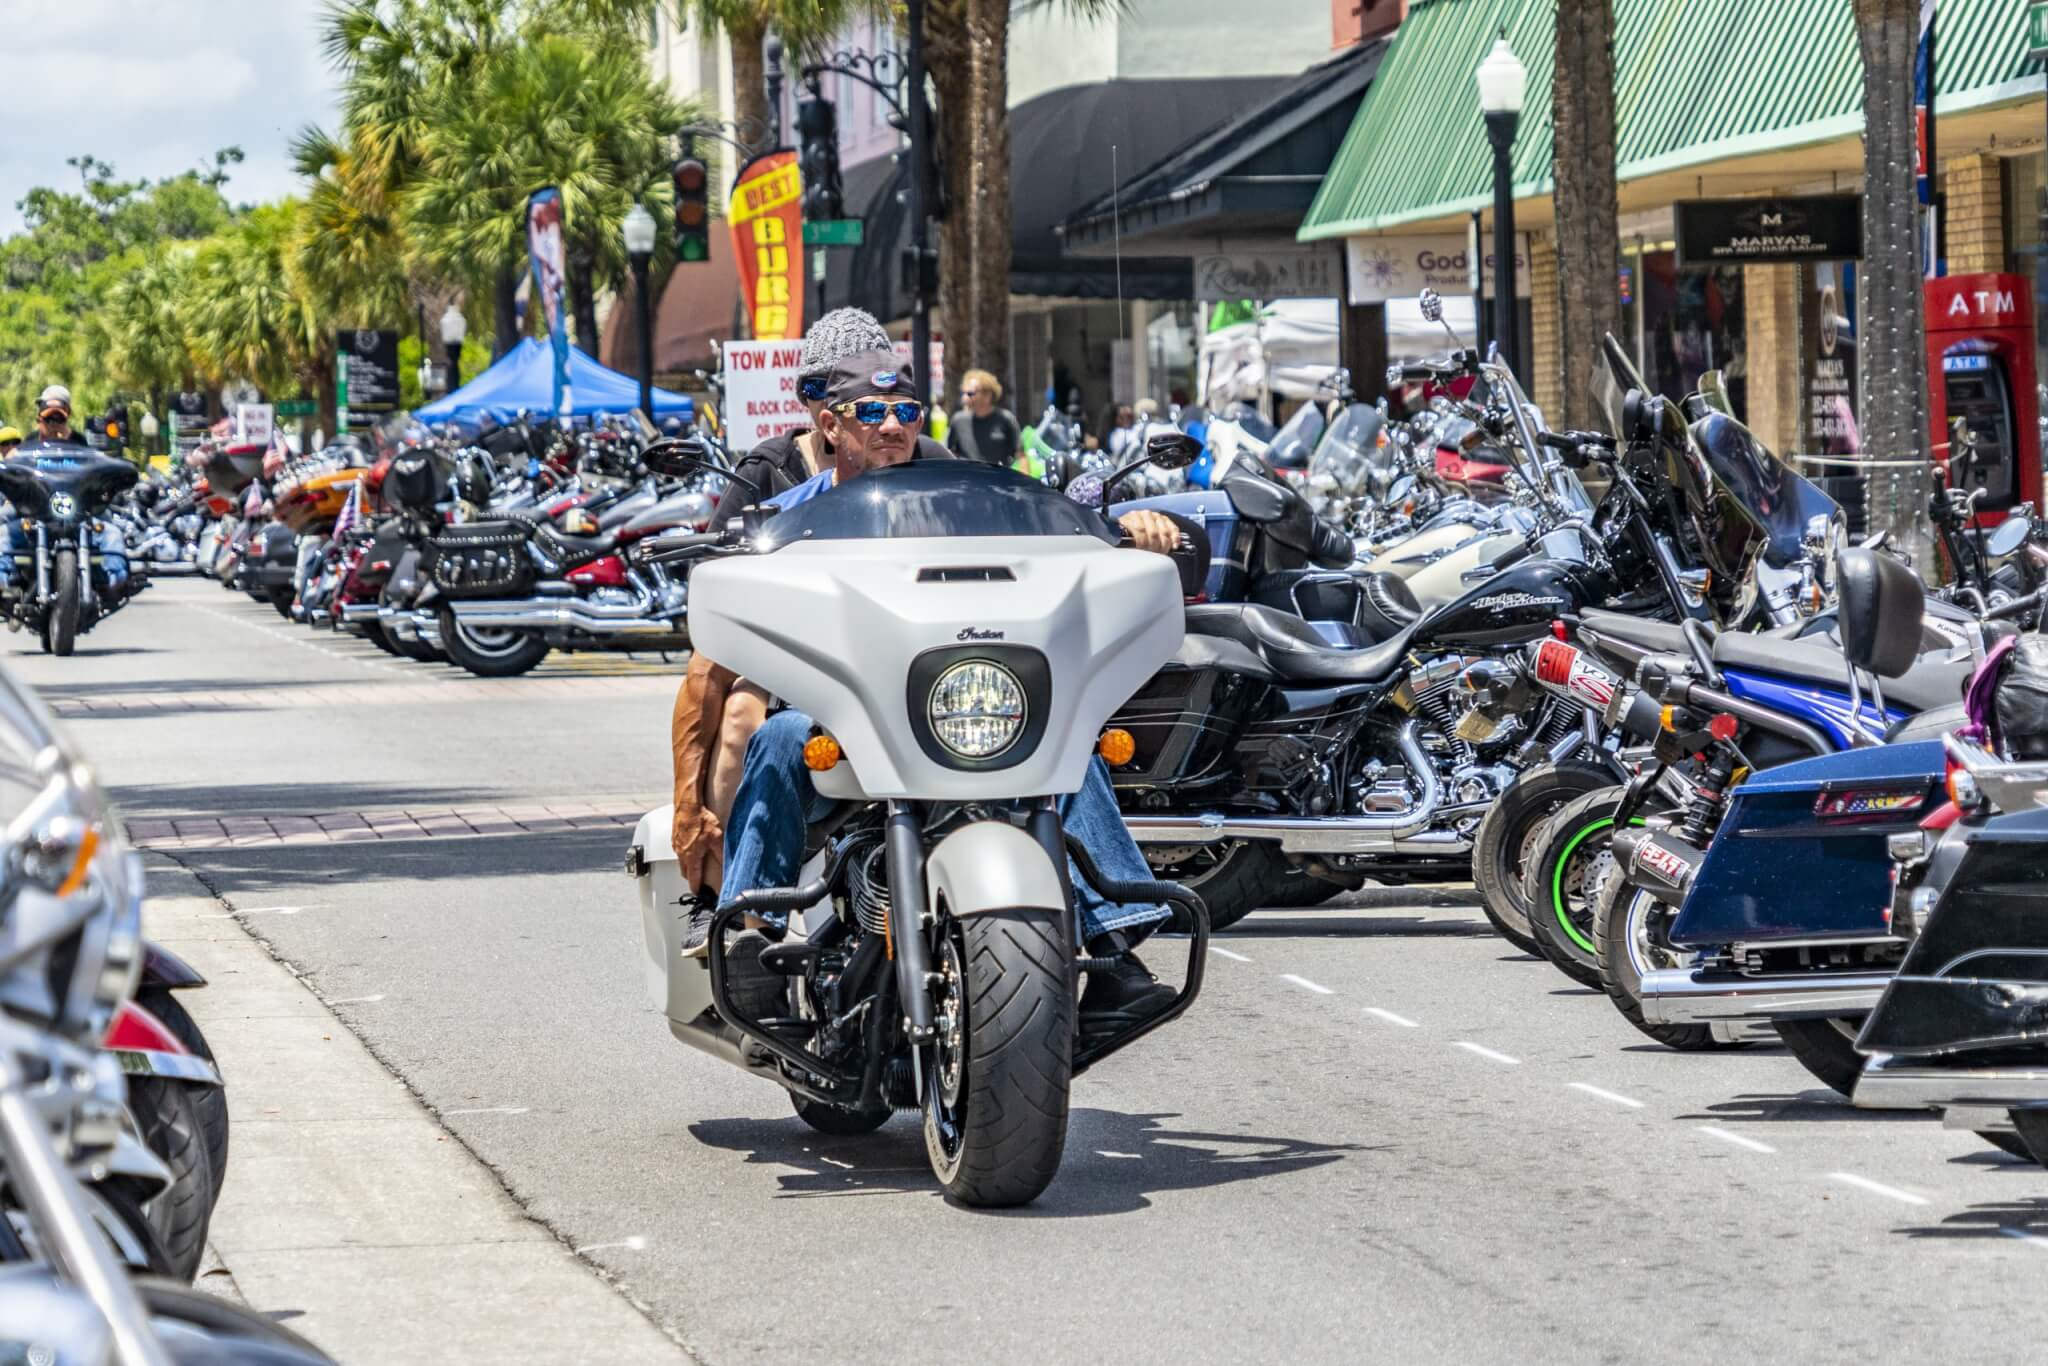 Bikefest 2019. Bikers drive down a street in Leesburg that is lined with hundreds of bikes.